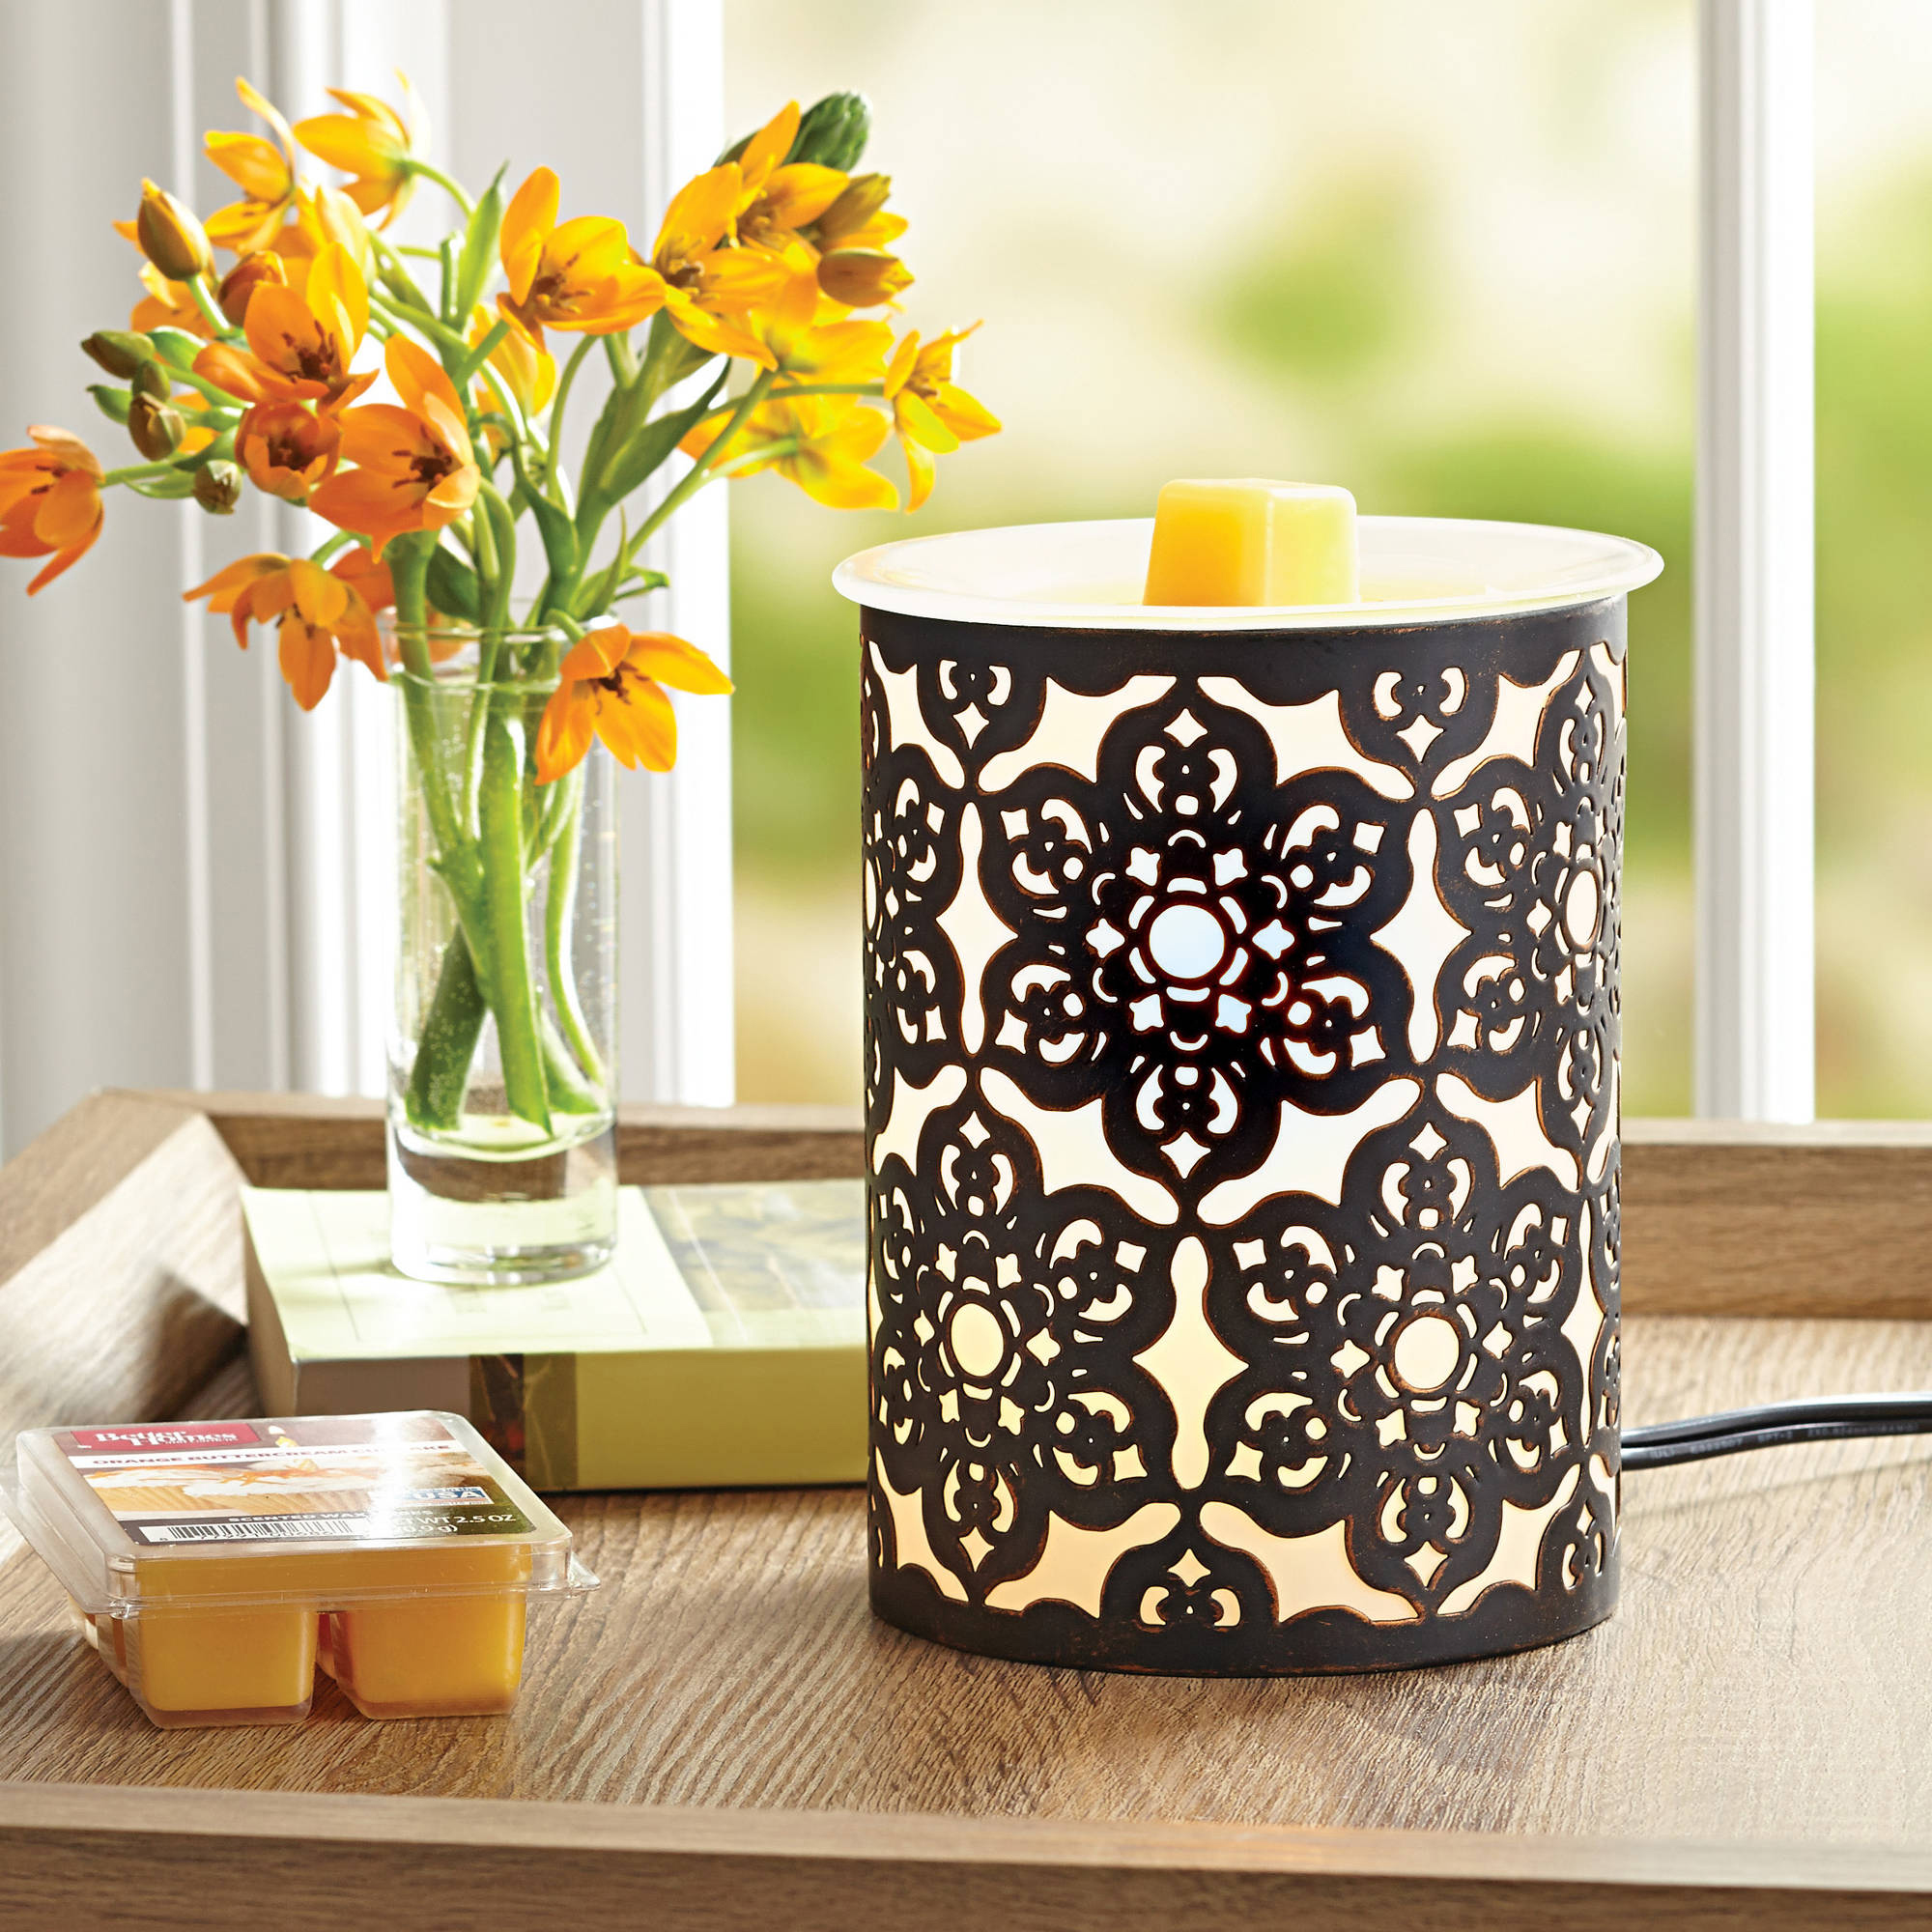 Better Homes and Gardens 4 Piece Wax Warmer Gift Set - Juliet, $29 Value